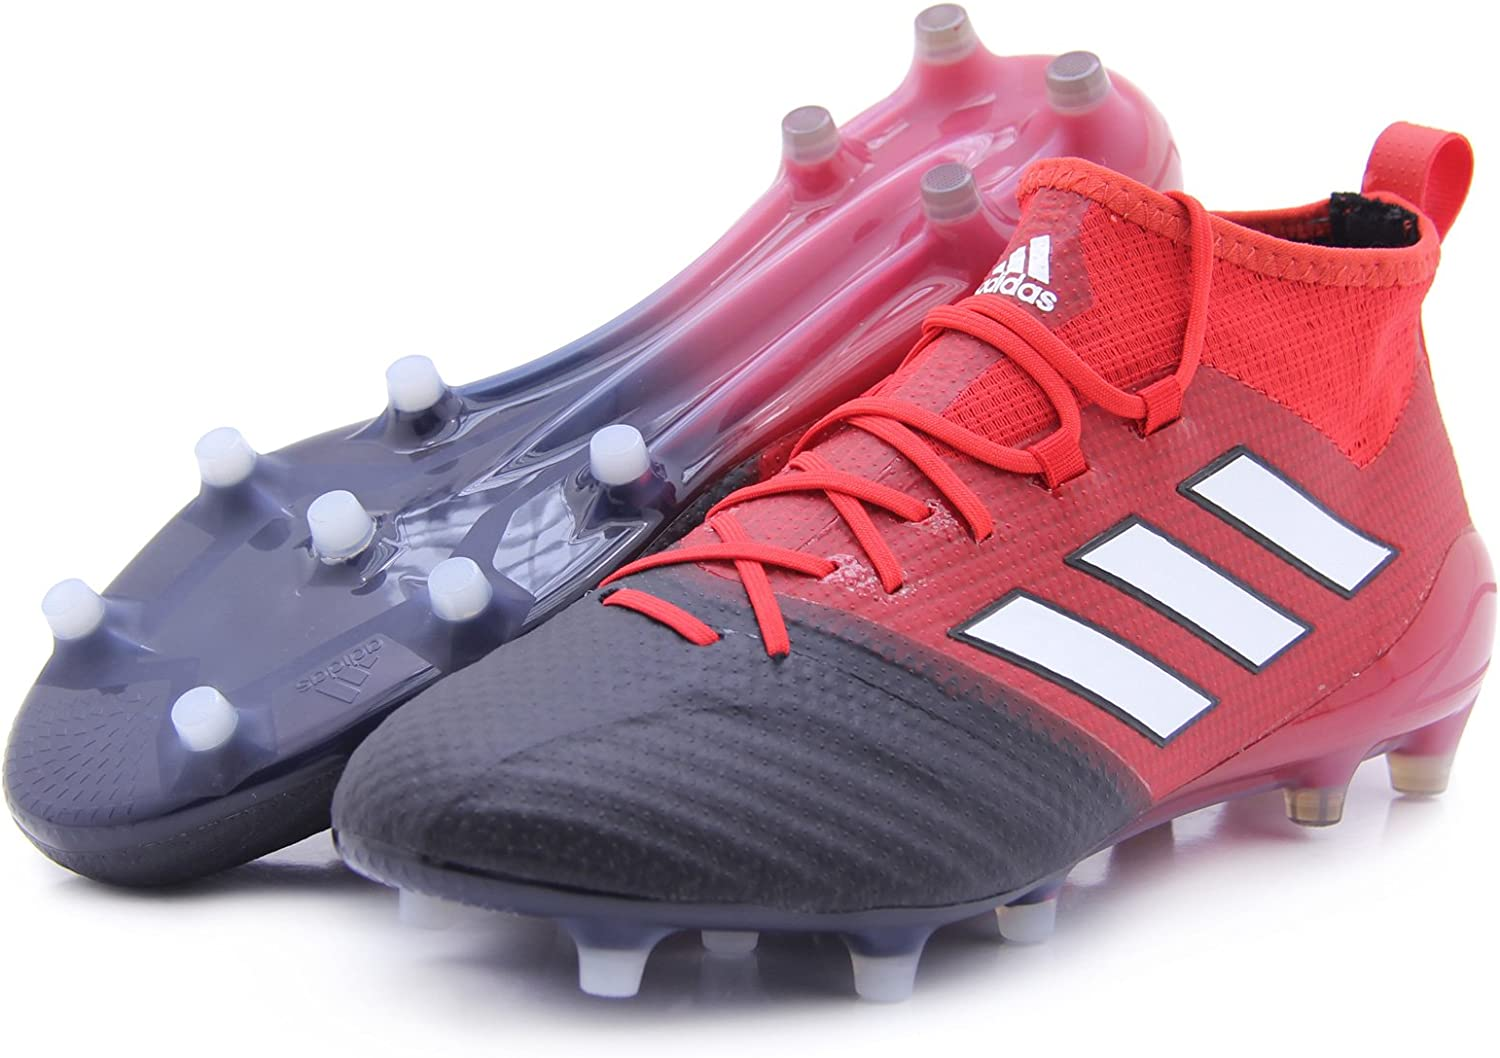 adidas ace red and black